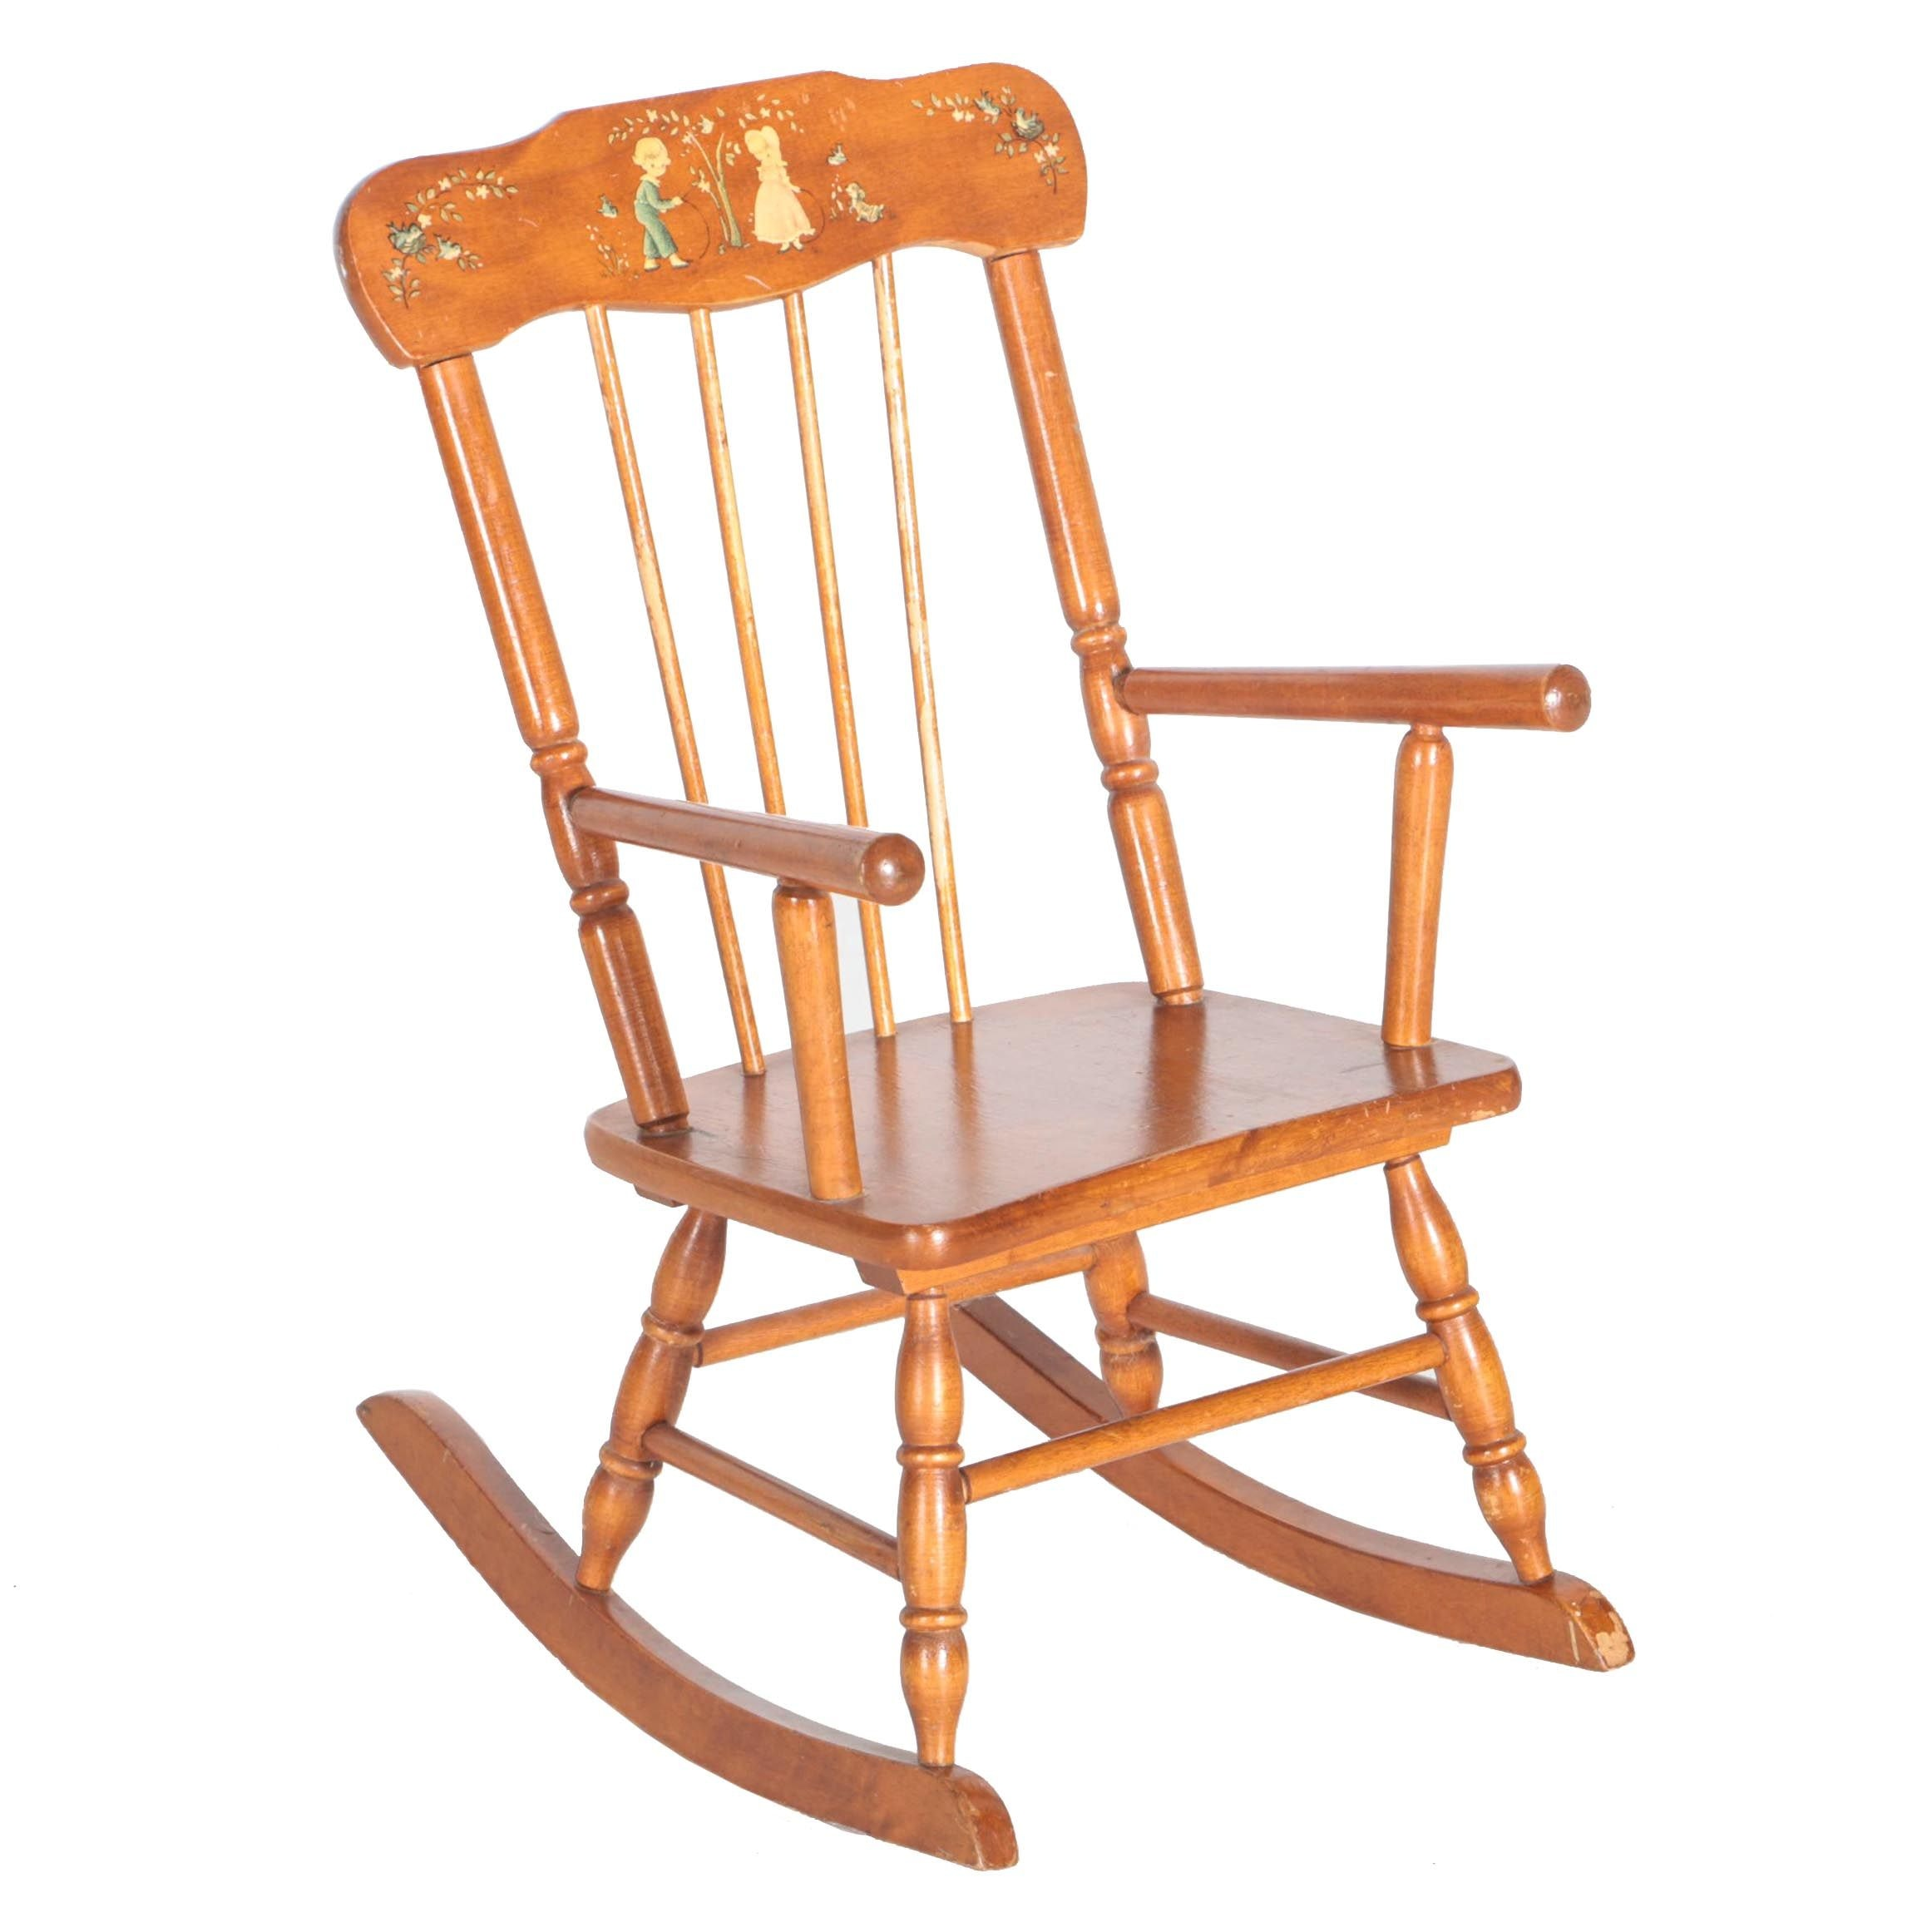 Vintage Children's Rocking Chair